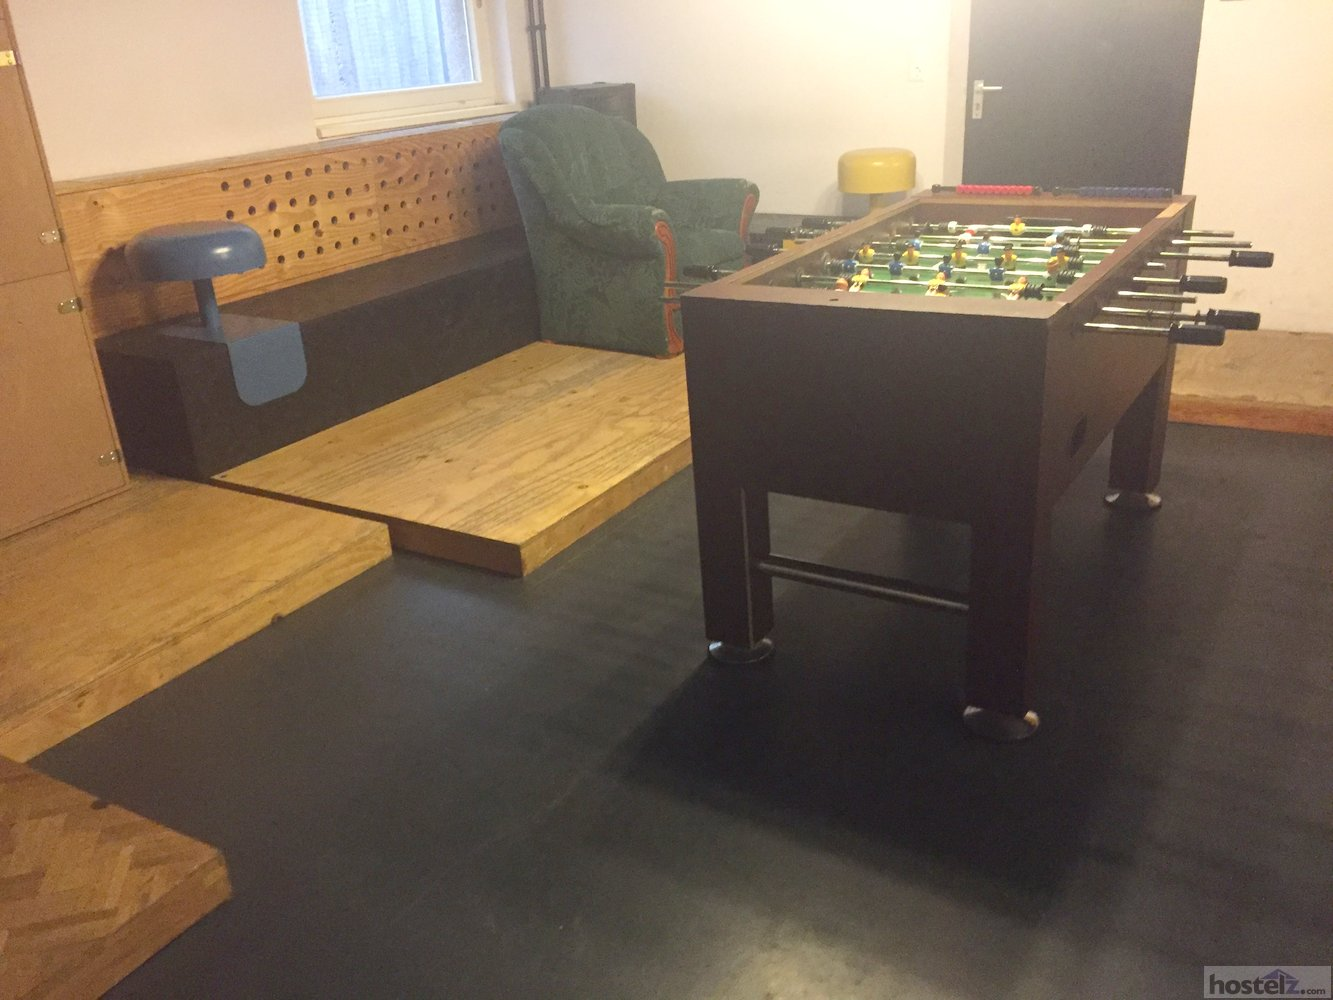 Foosball in the rec room